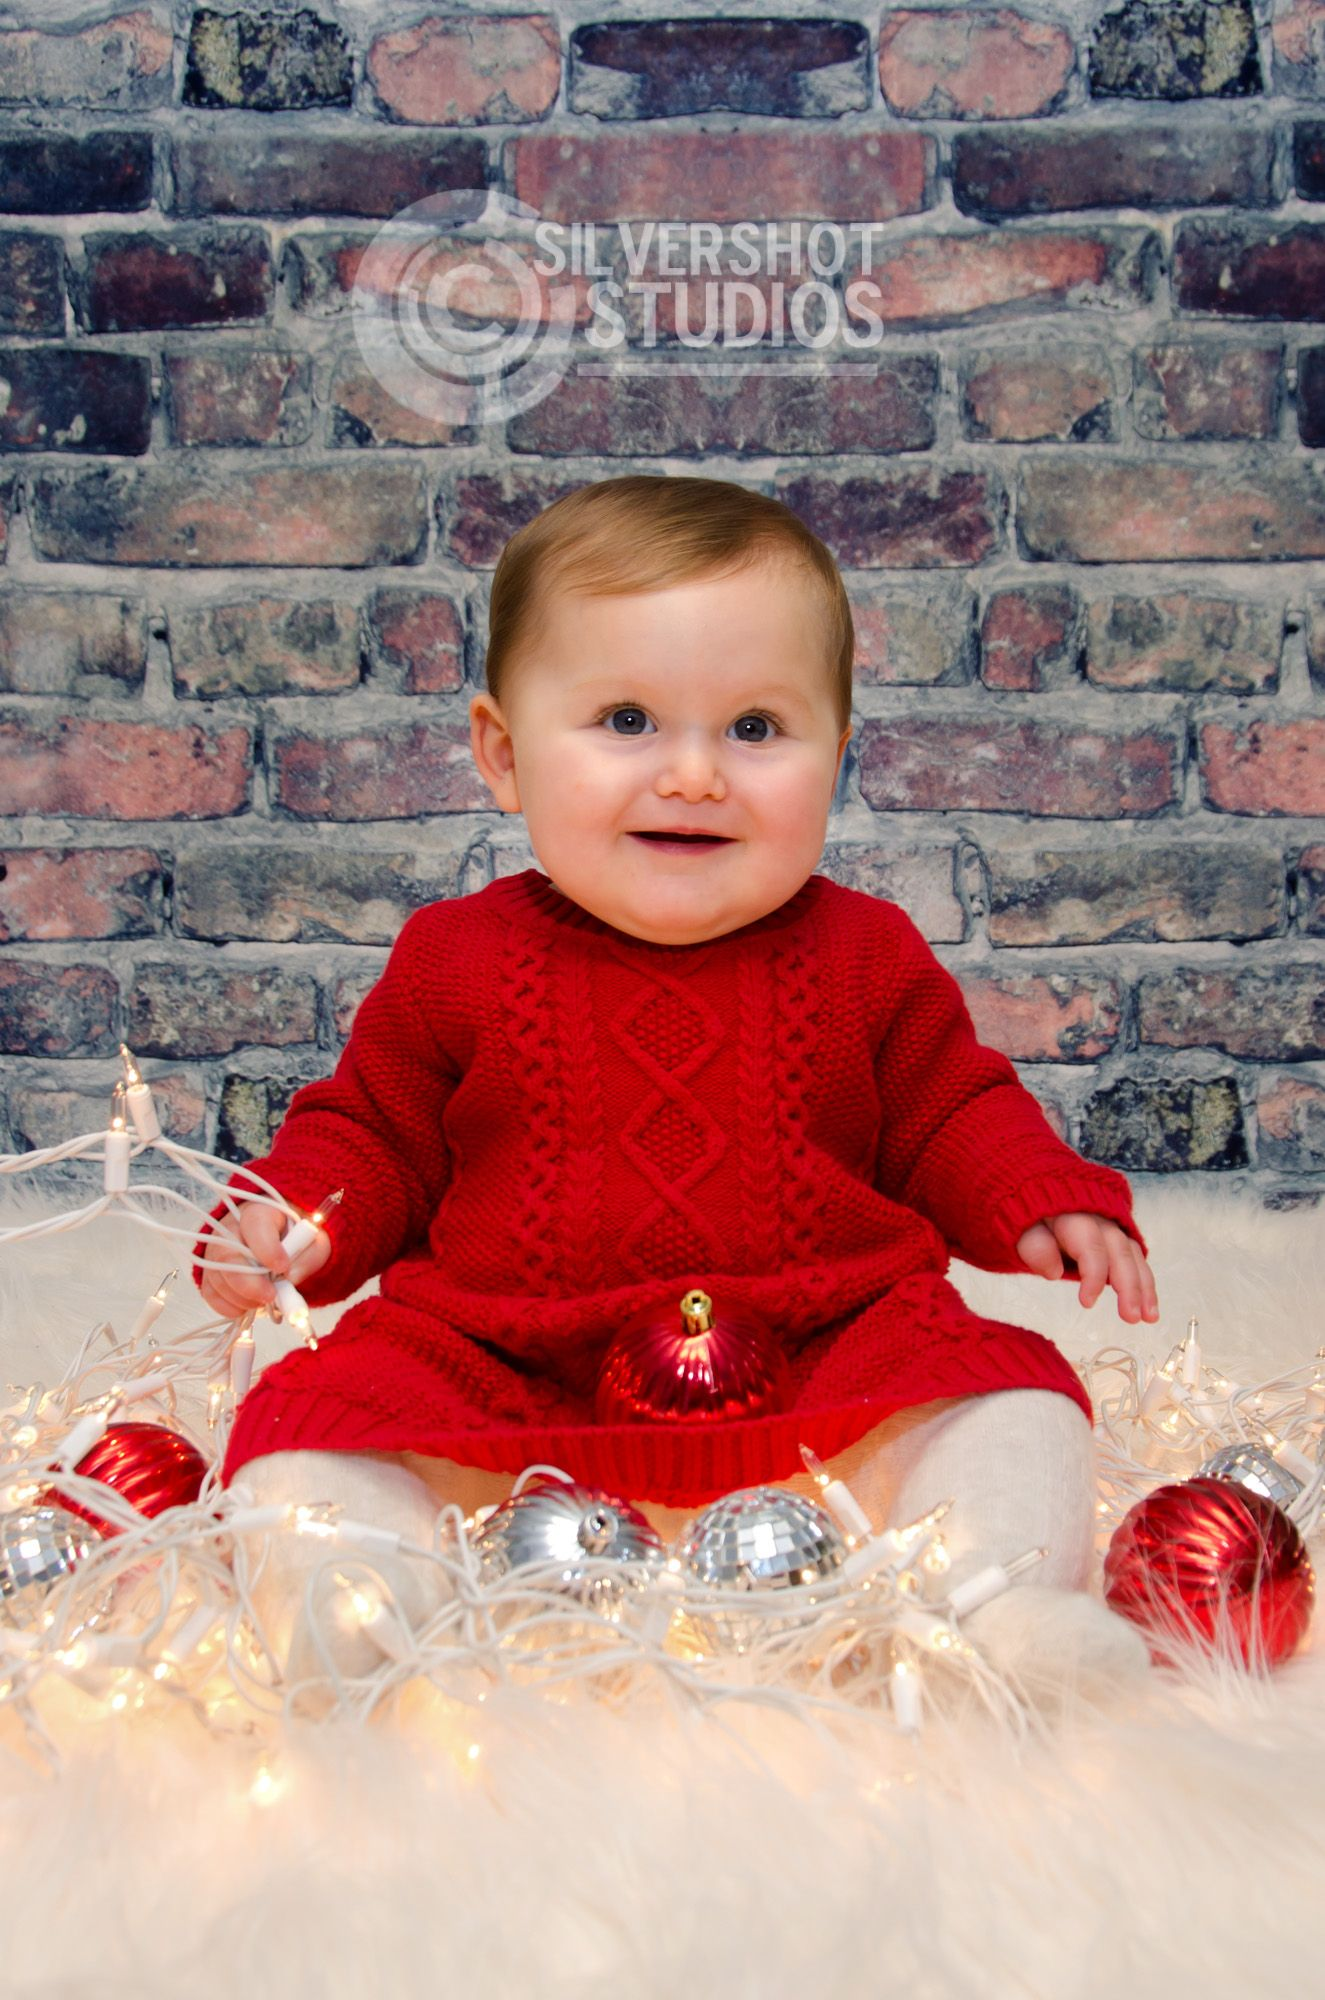 Baby Girl Red Dress Sweater Christmas Lights Ornaments Fur